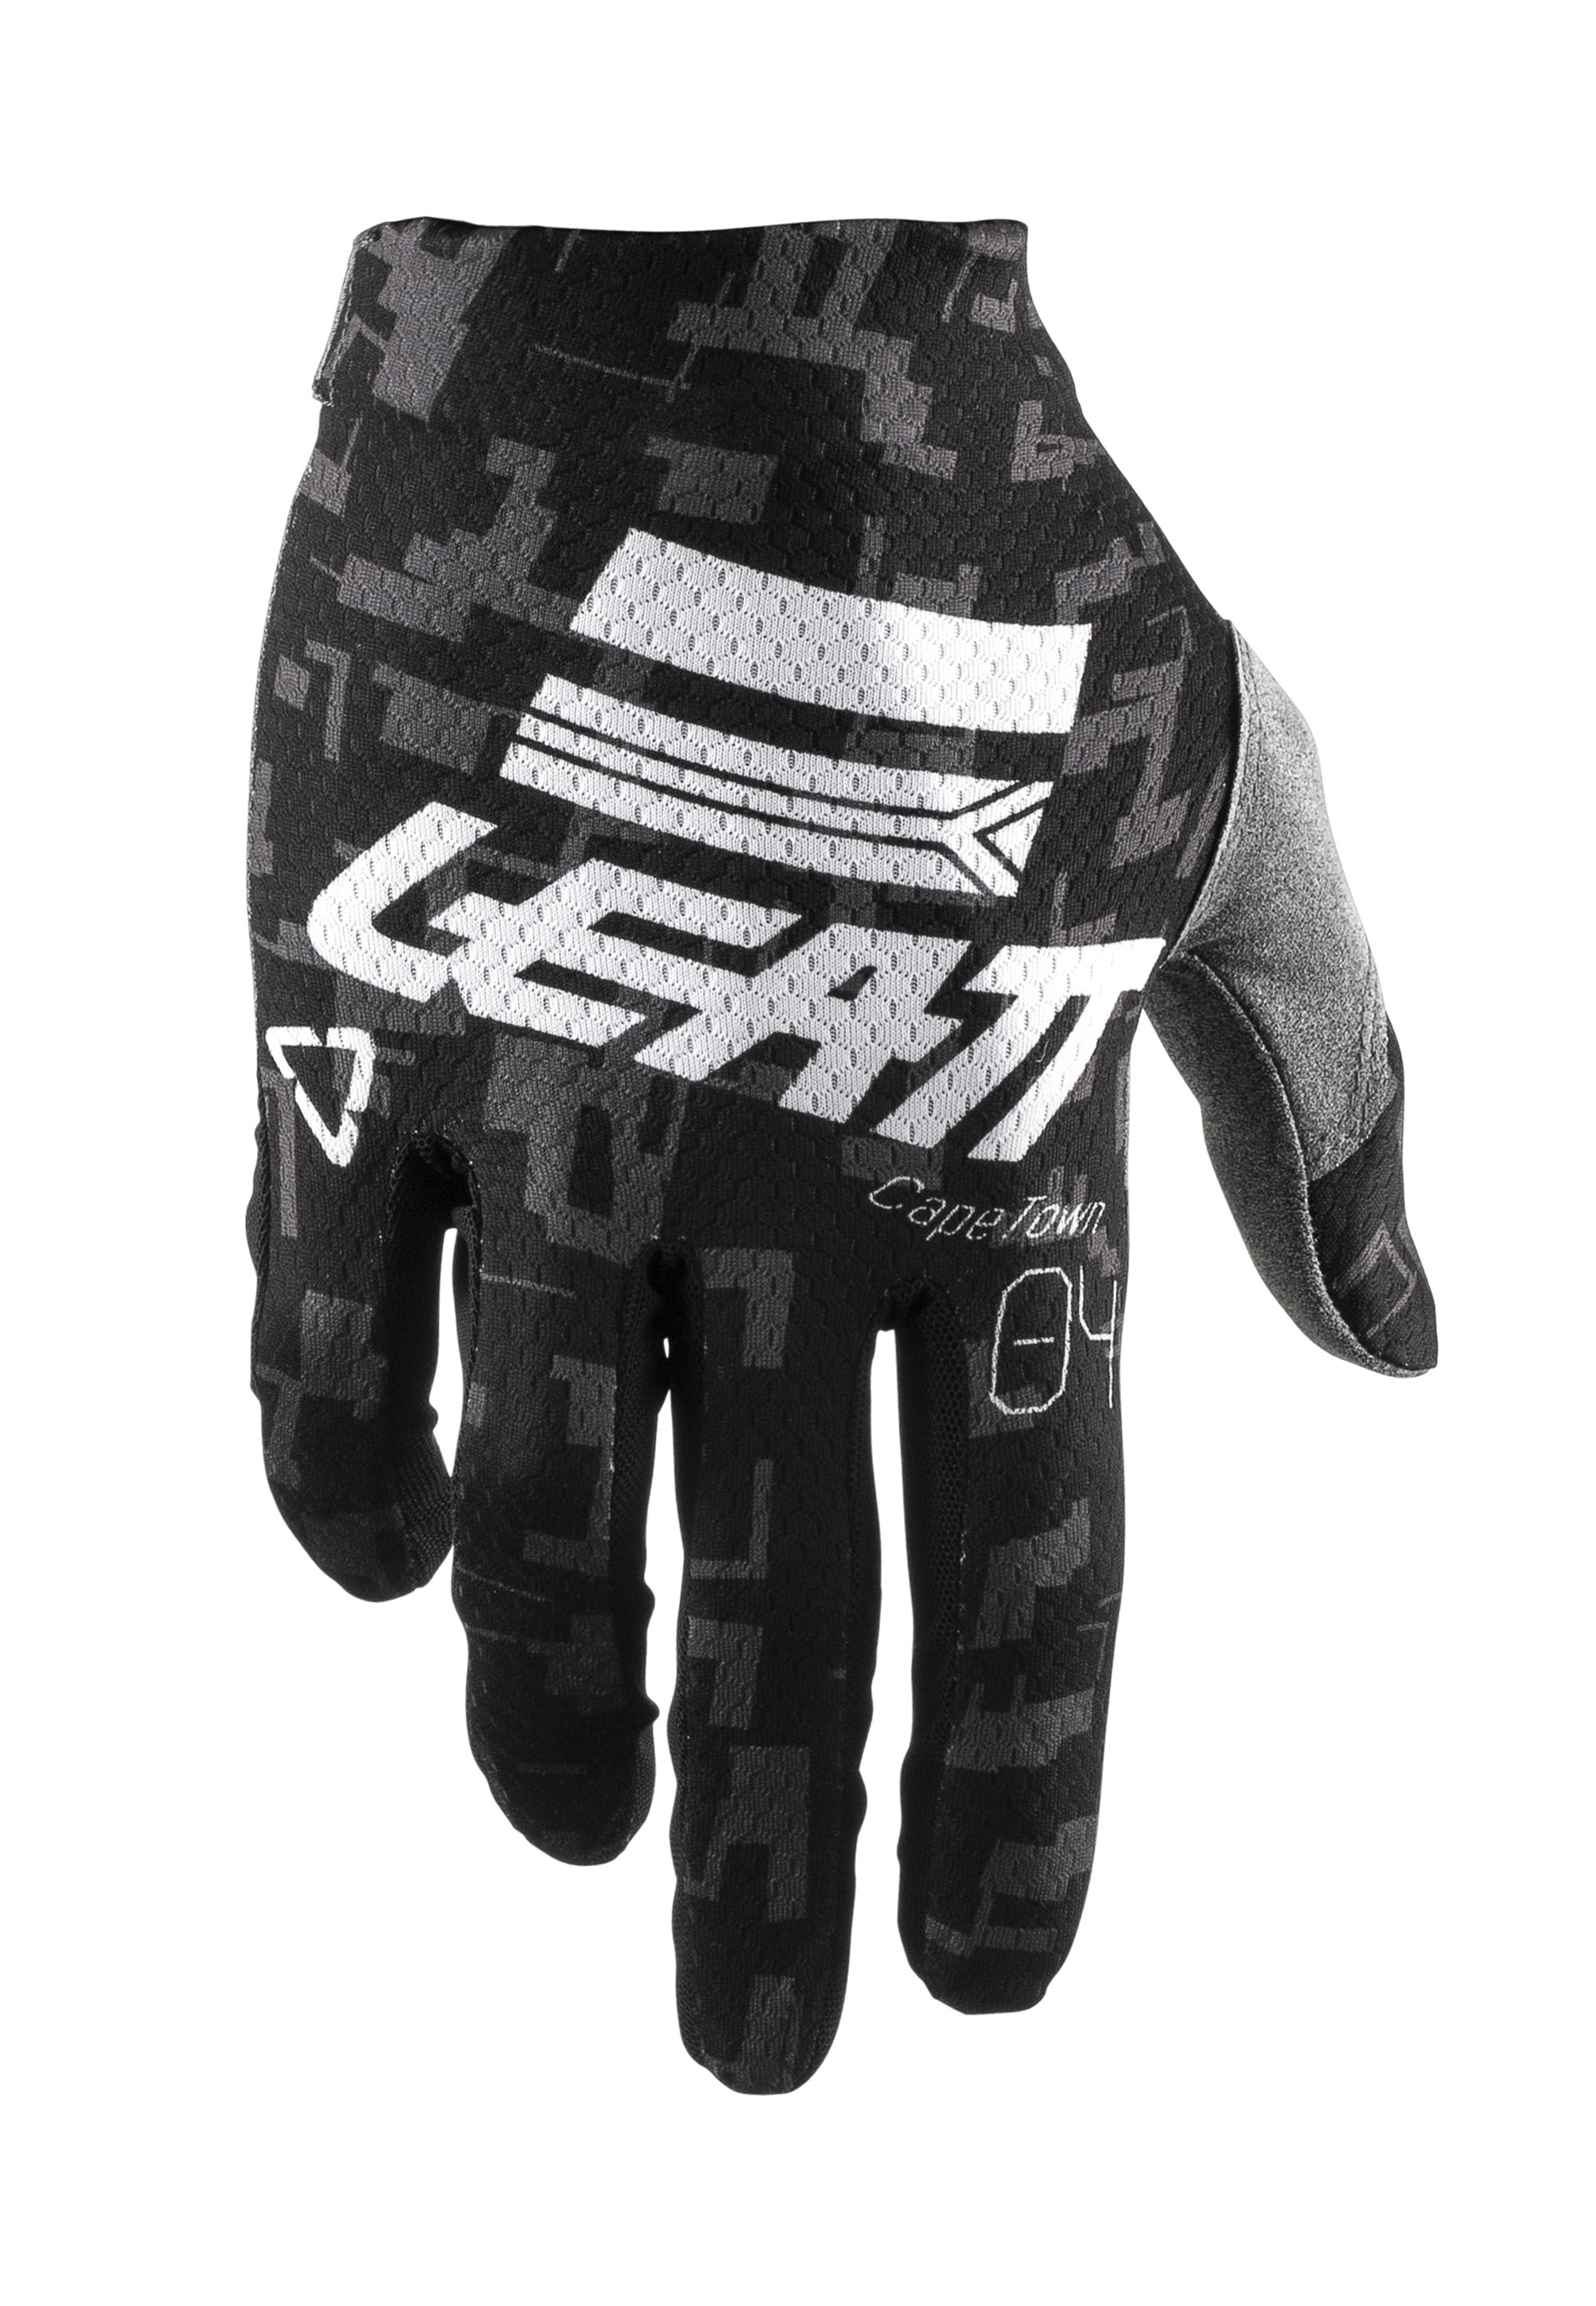 Leatt Brace 2020 GPX 1.5 GripR Adult Off-Road Motorcycle Gloves Lime//Large